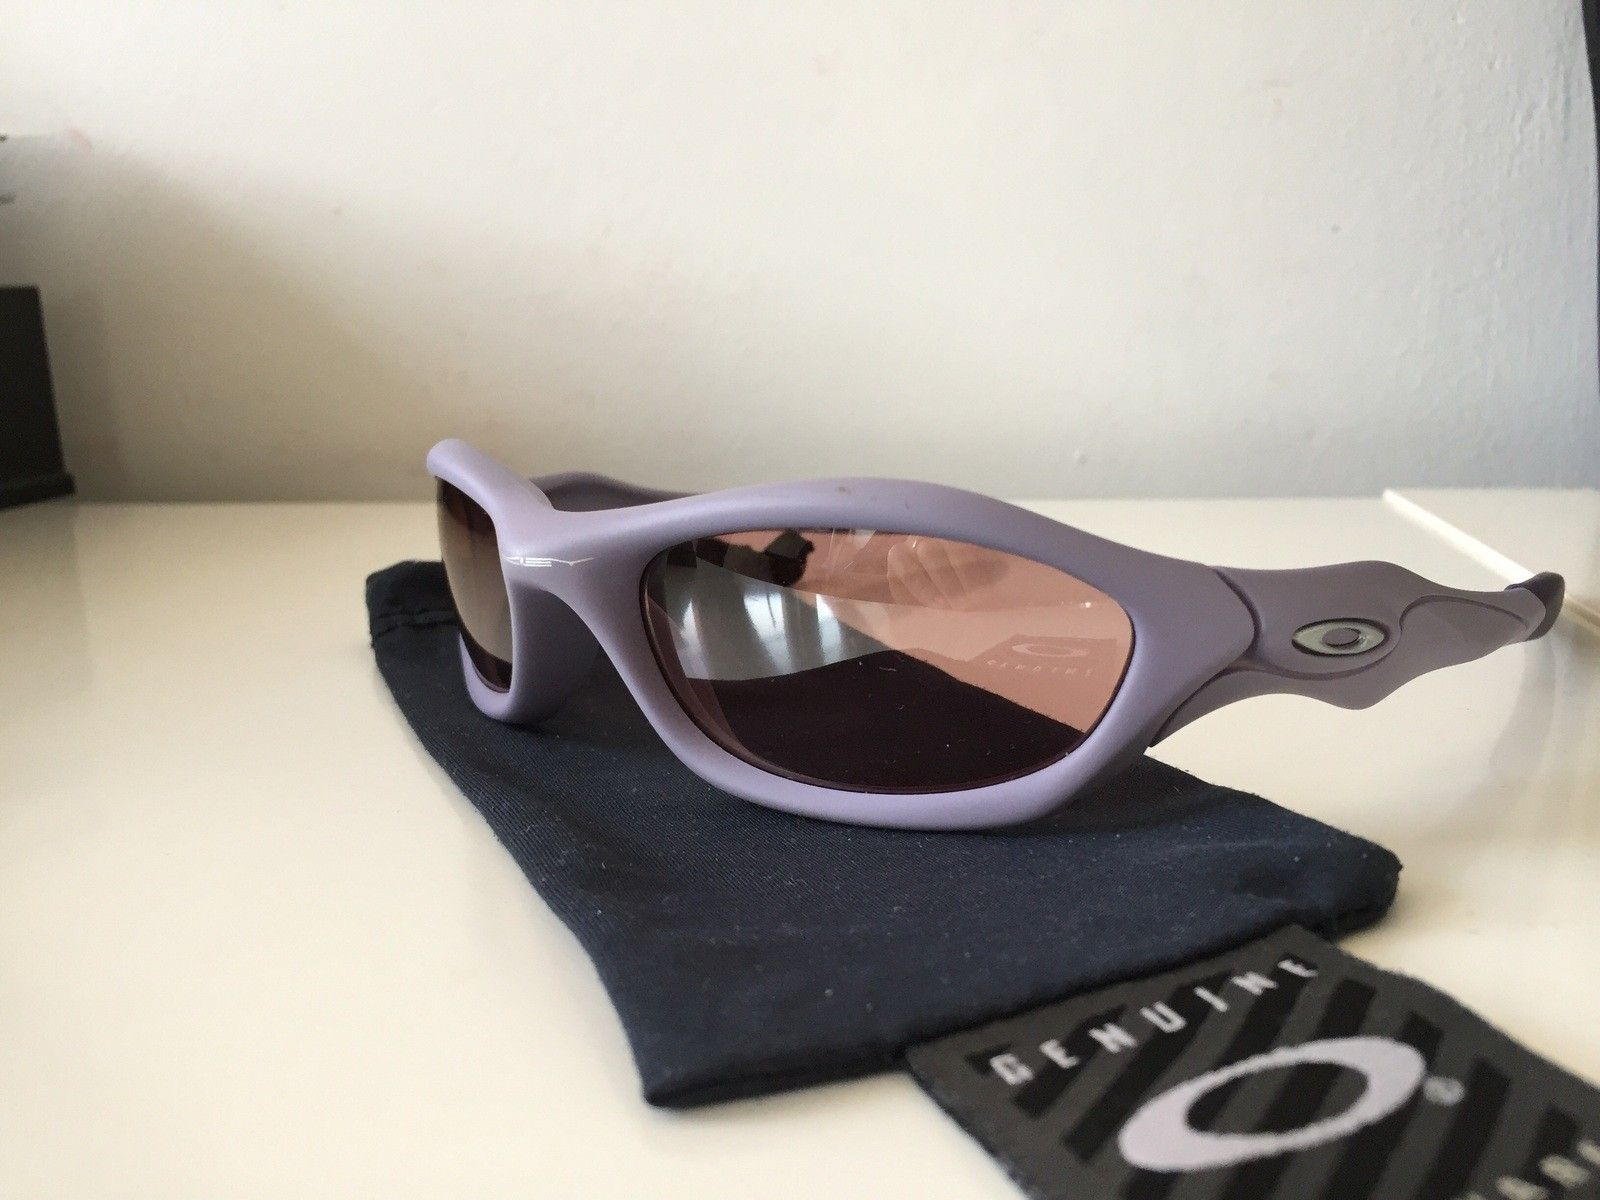 Oakley Unknown Overcast Lavender - image.jpg